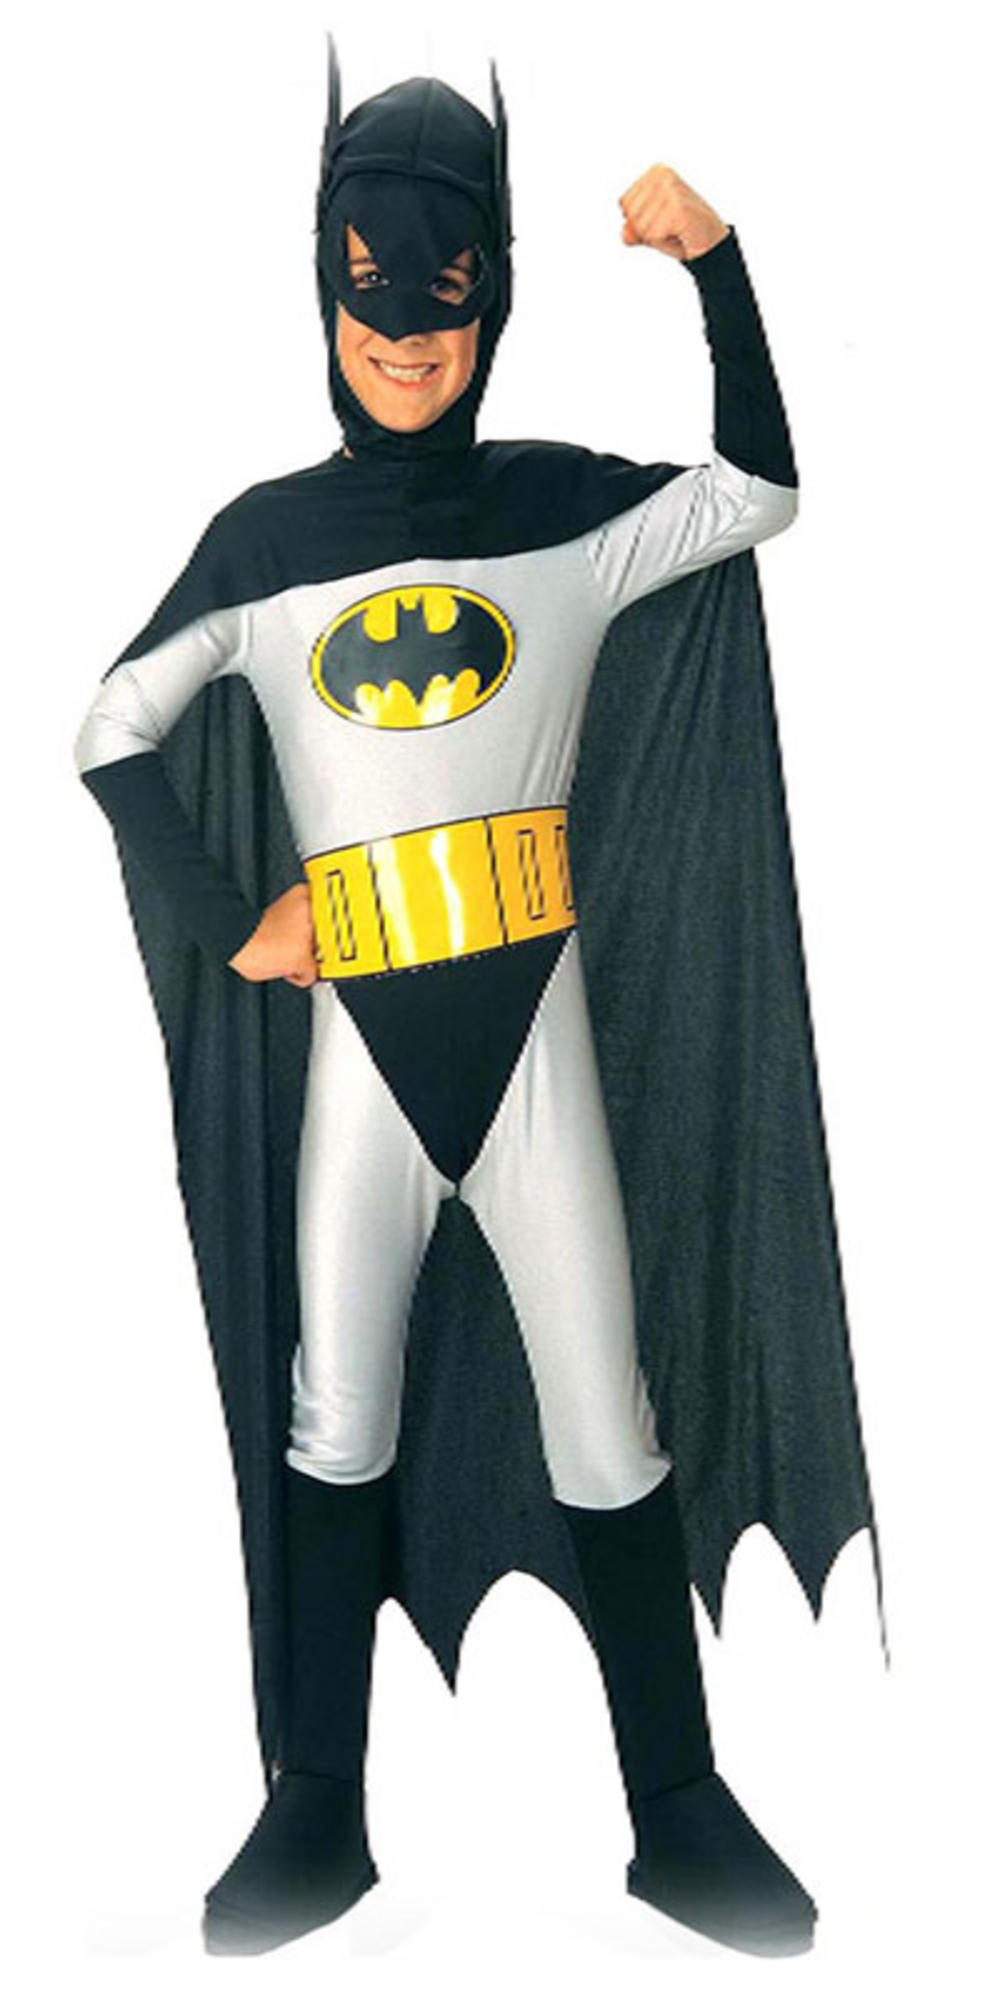 Adult Batman Costumes. Party & Occasions. Halloween. All Halloween Costumes. Adult Halloween Costumes. Grey Batman Muscle Chest Deluxe Fancy Dress Costume - Adult. Product Image. Price $ Items sold by gothicphotos.ga that are marked eligible on .